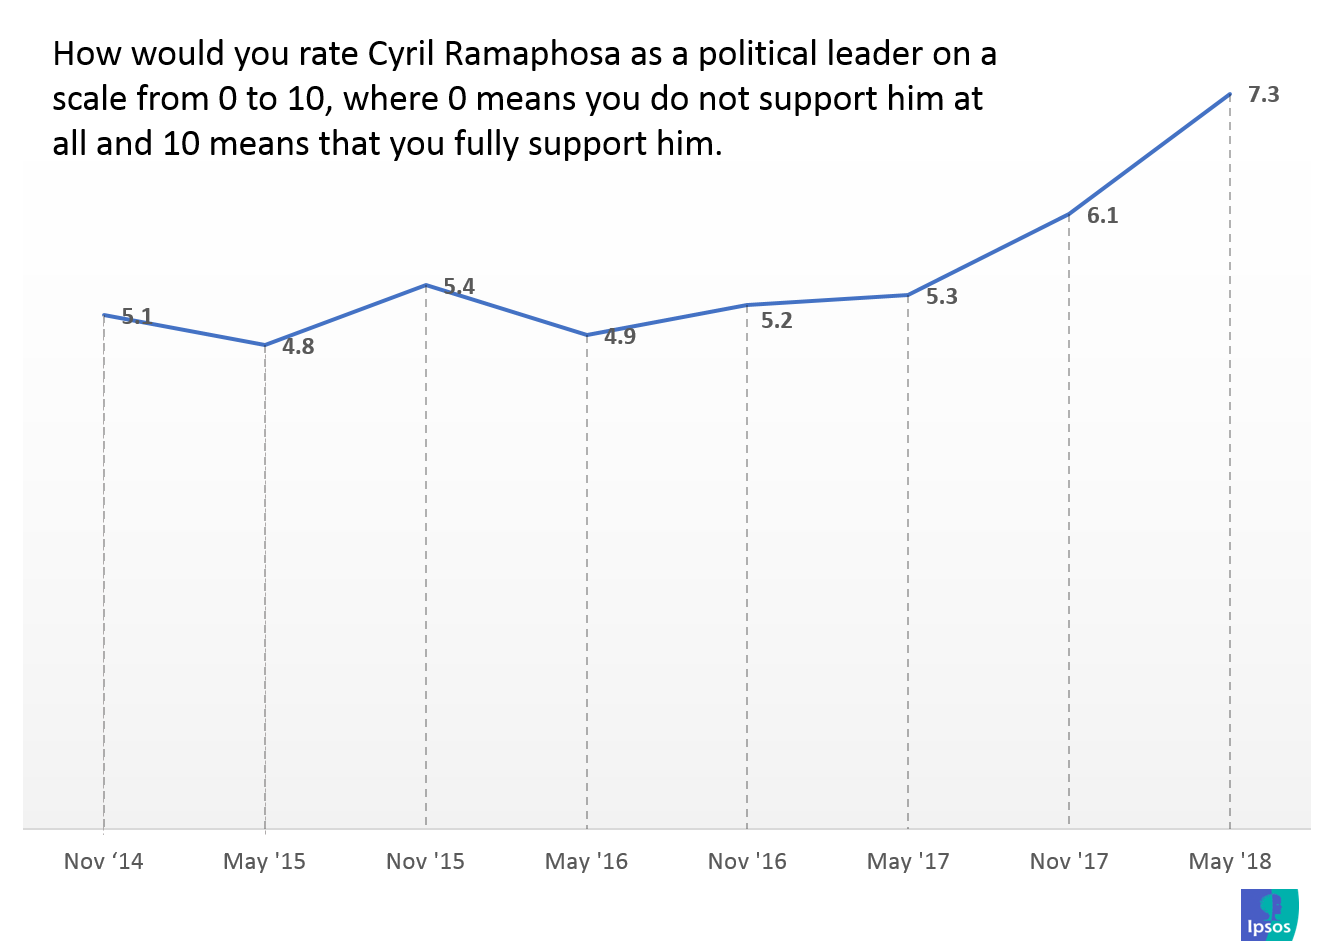 How would you rate CR as a political leader